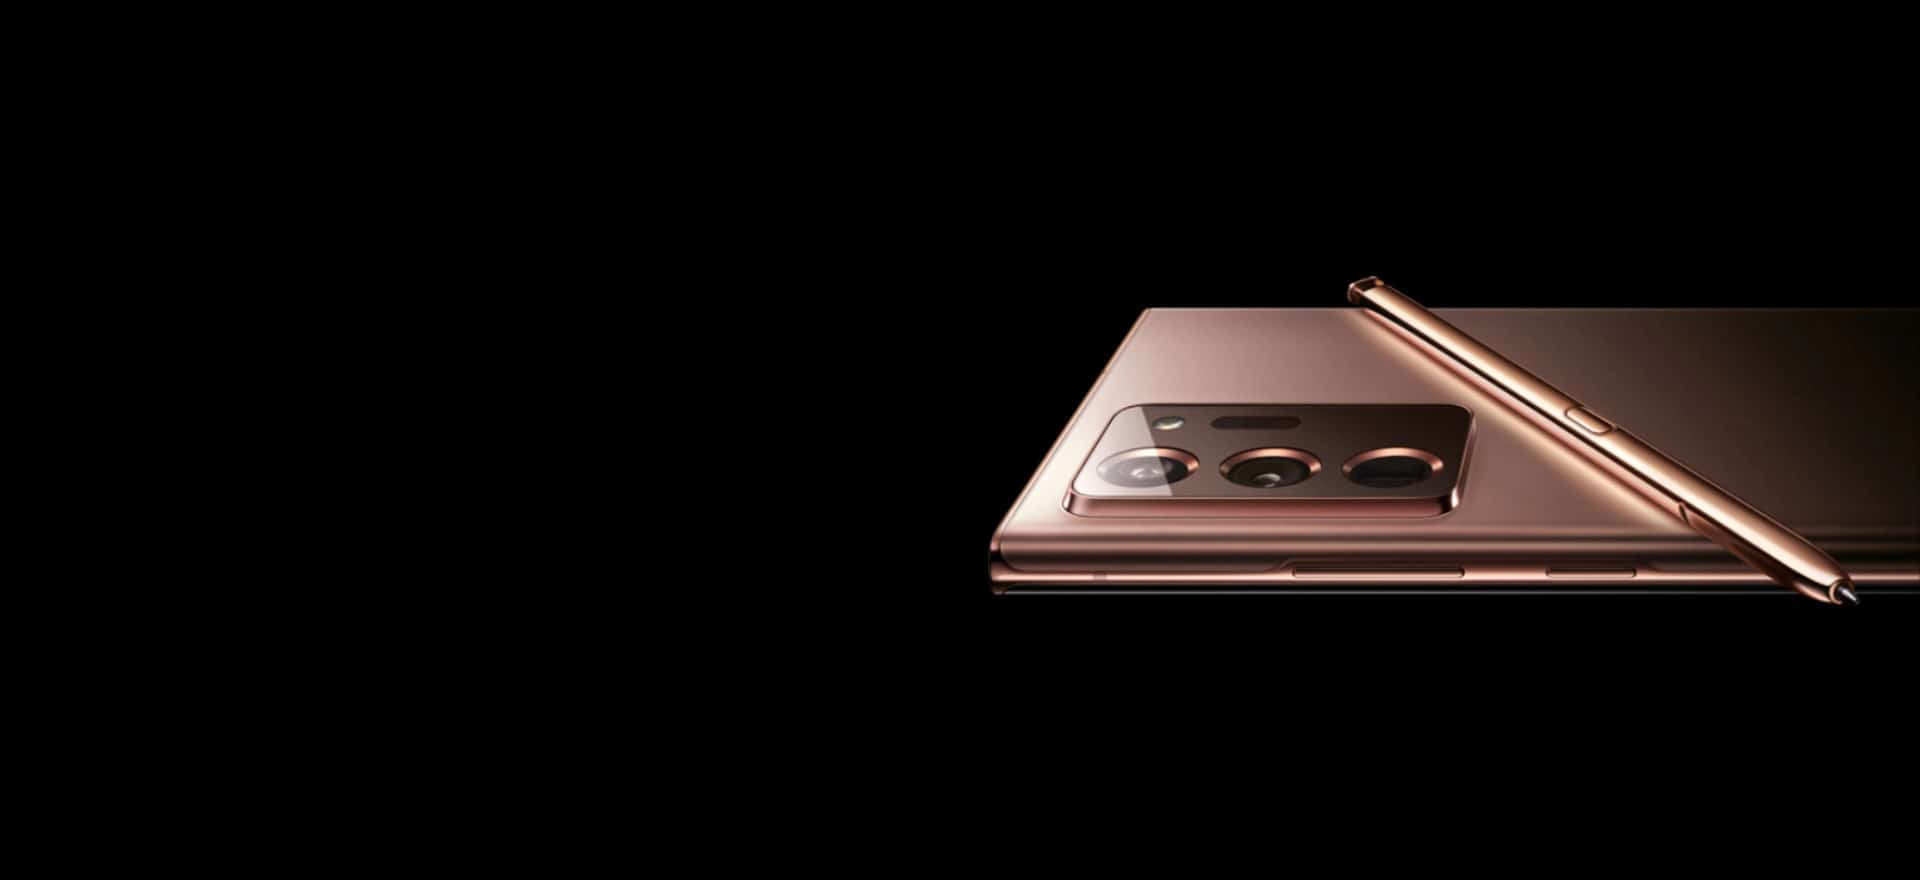 galaxy note 20 ultra mystic bronze 2